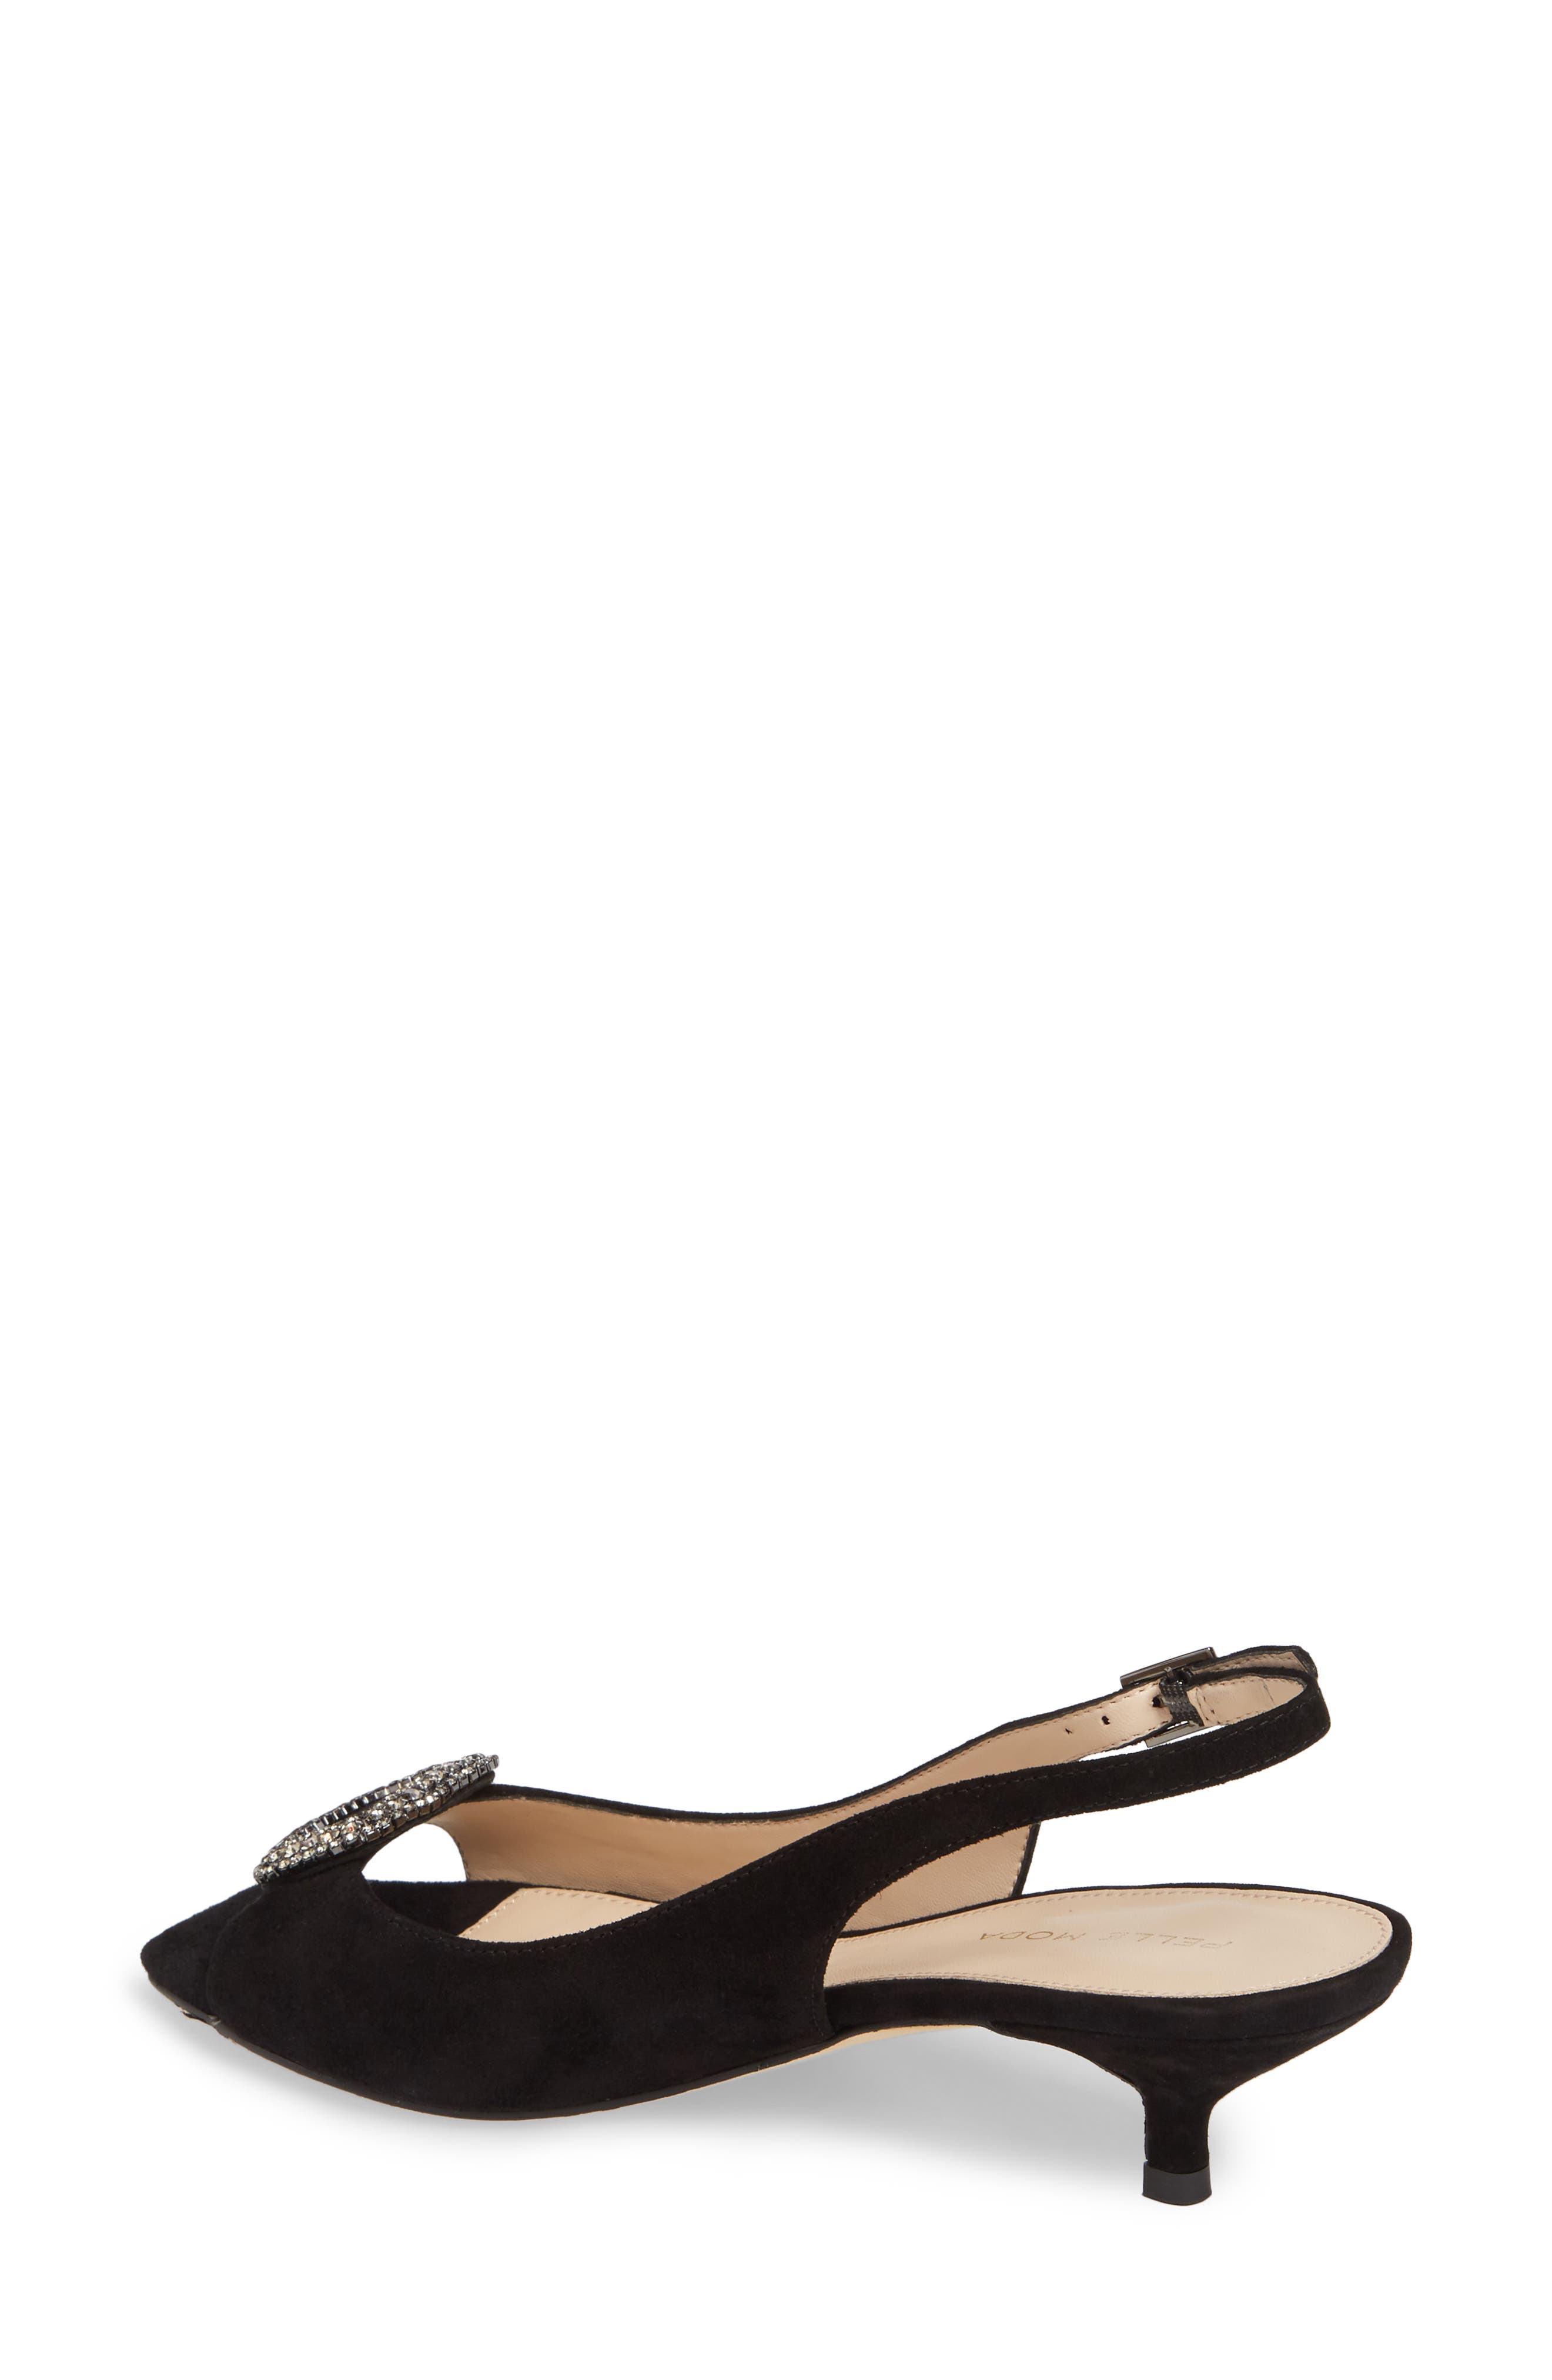 Fresca Slingback Sandal,                             Alternate thumbnail 2, color,                             Black Suede